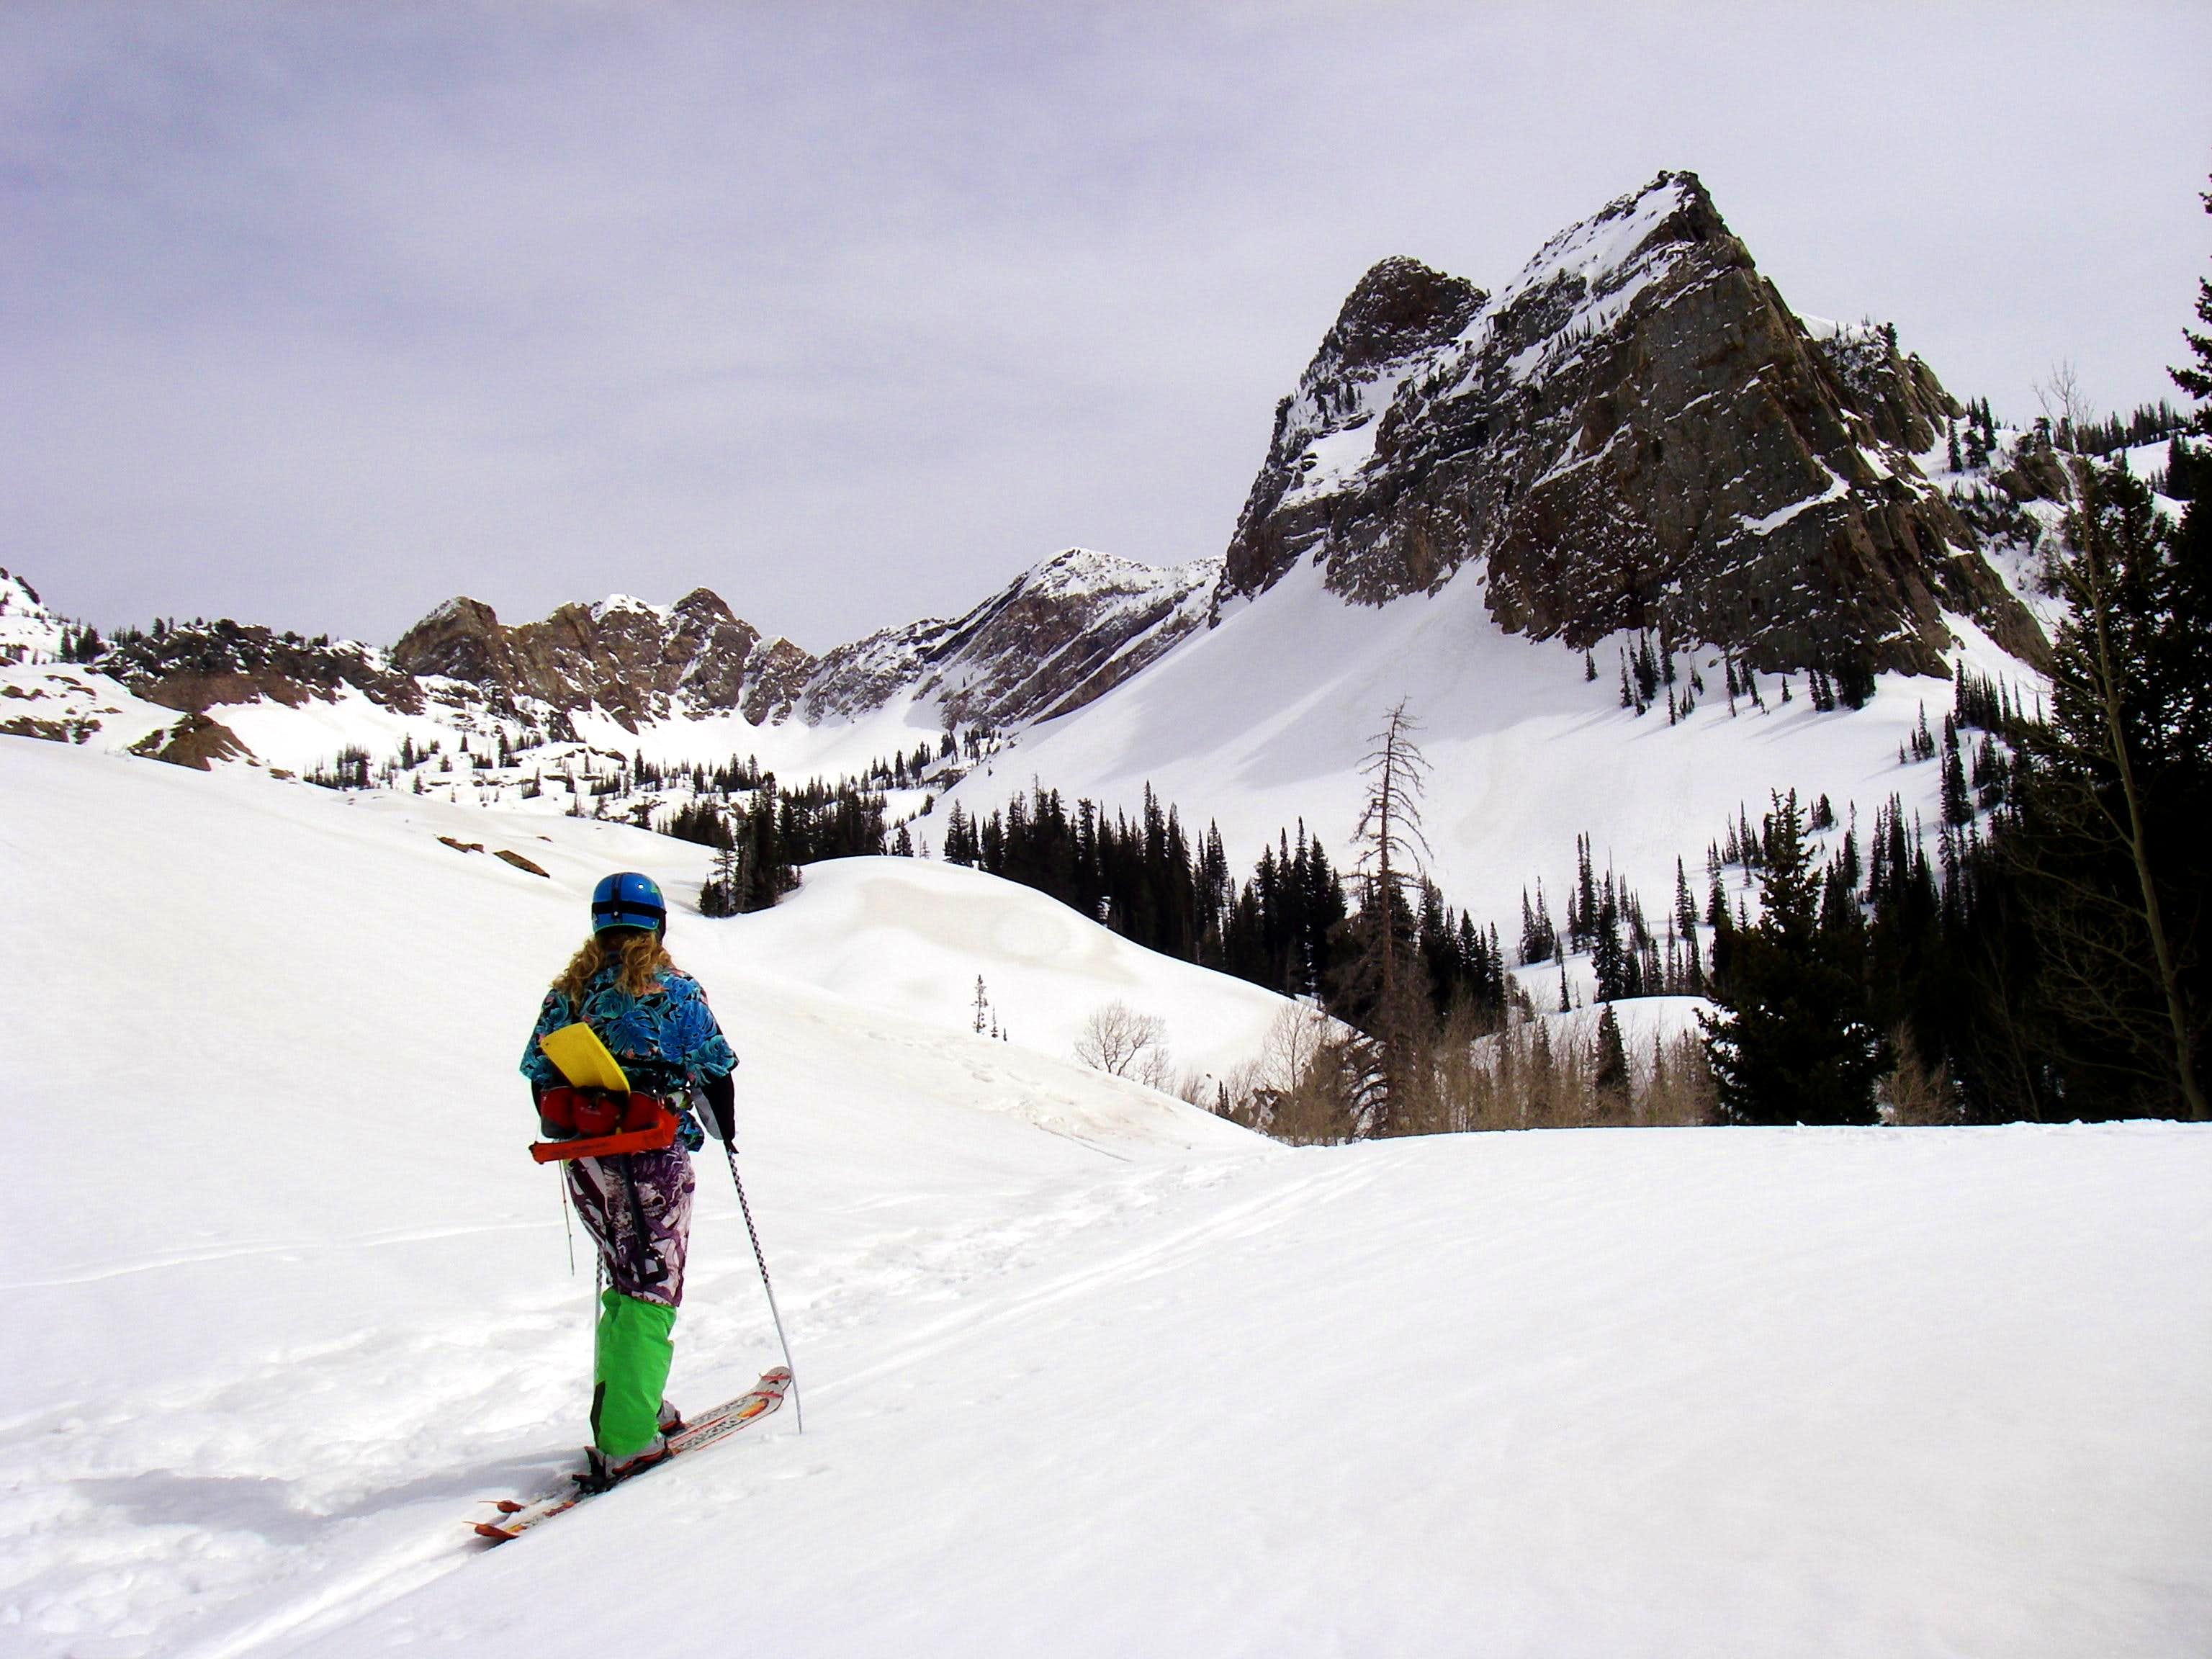 Central Wasatch Backcountry Skiing